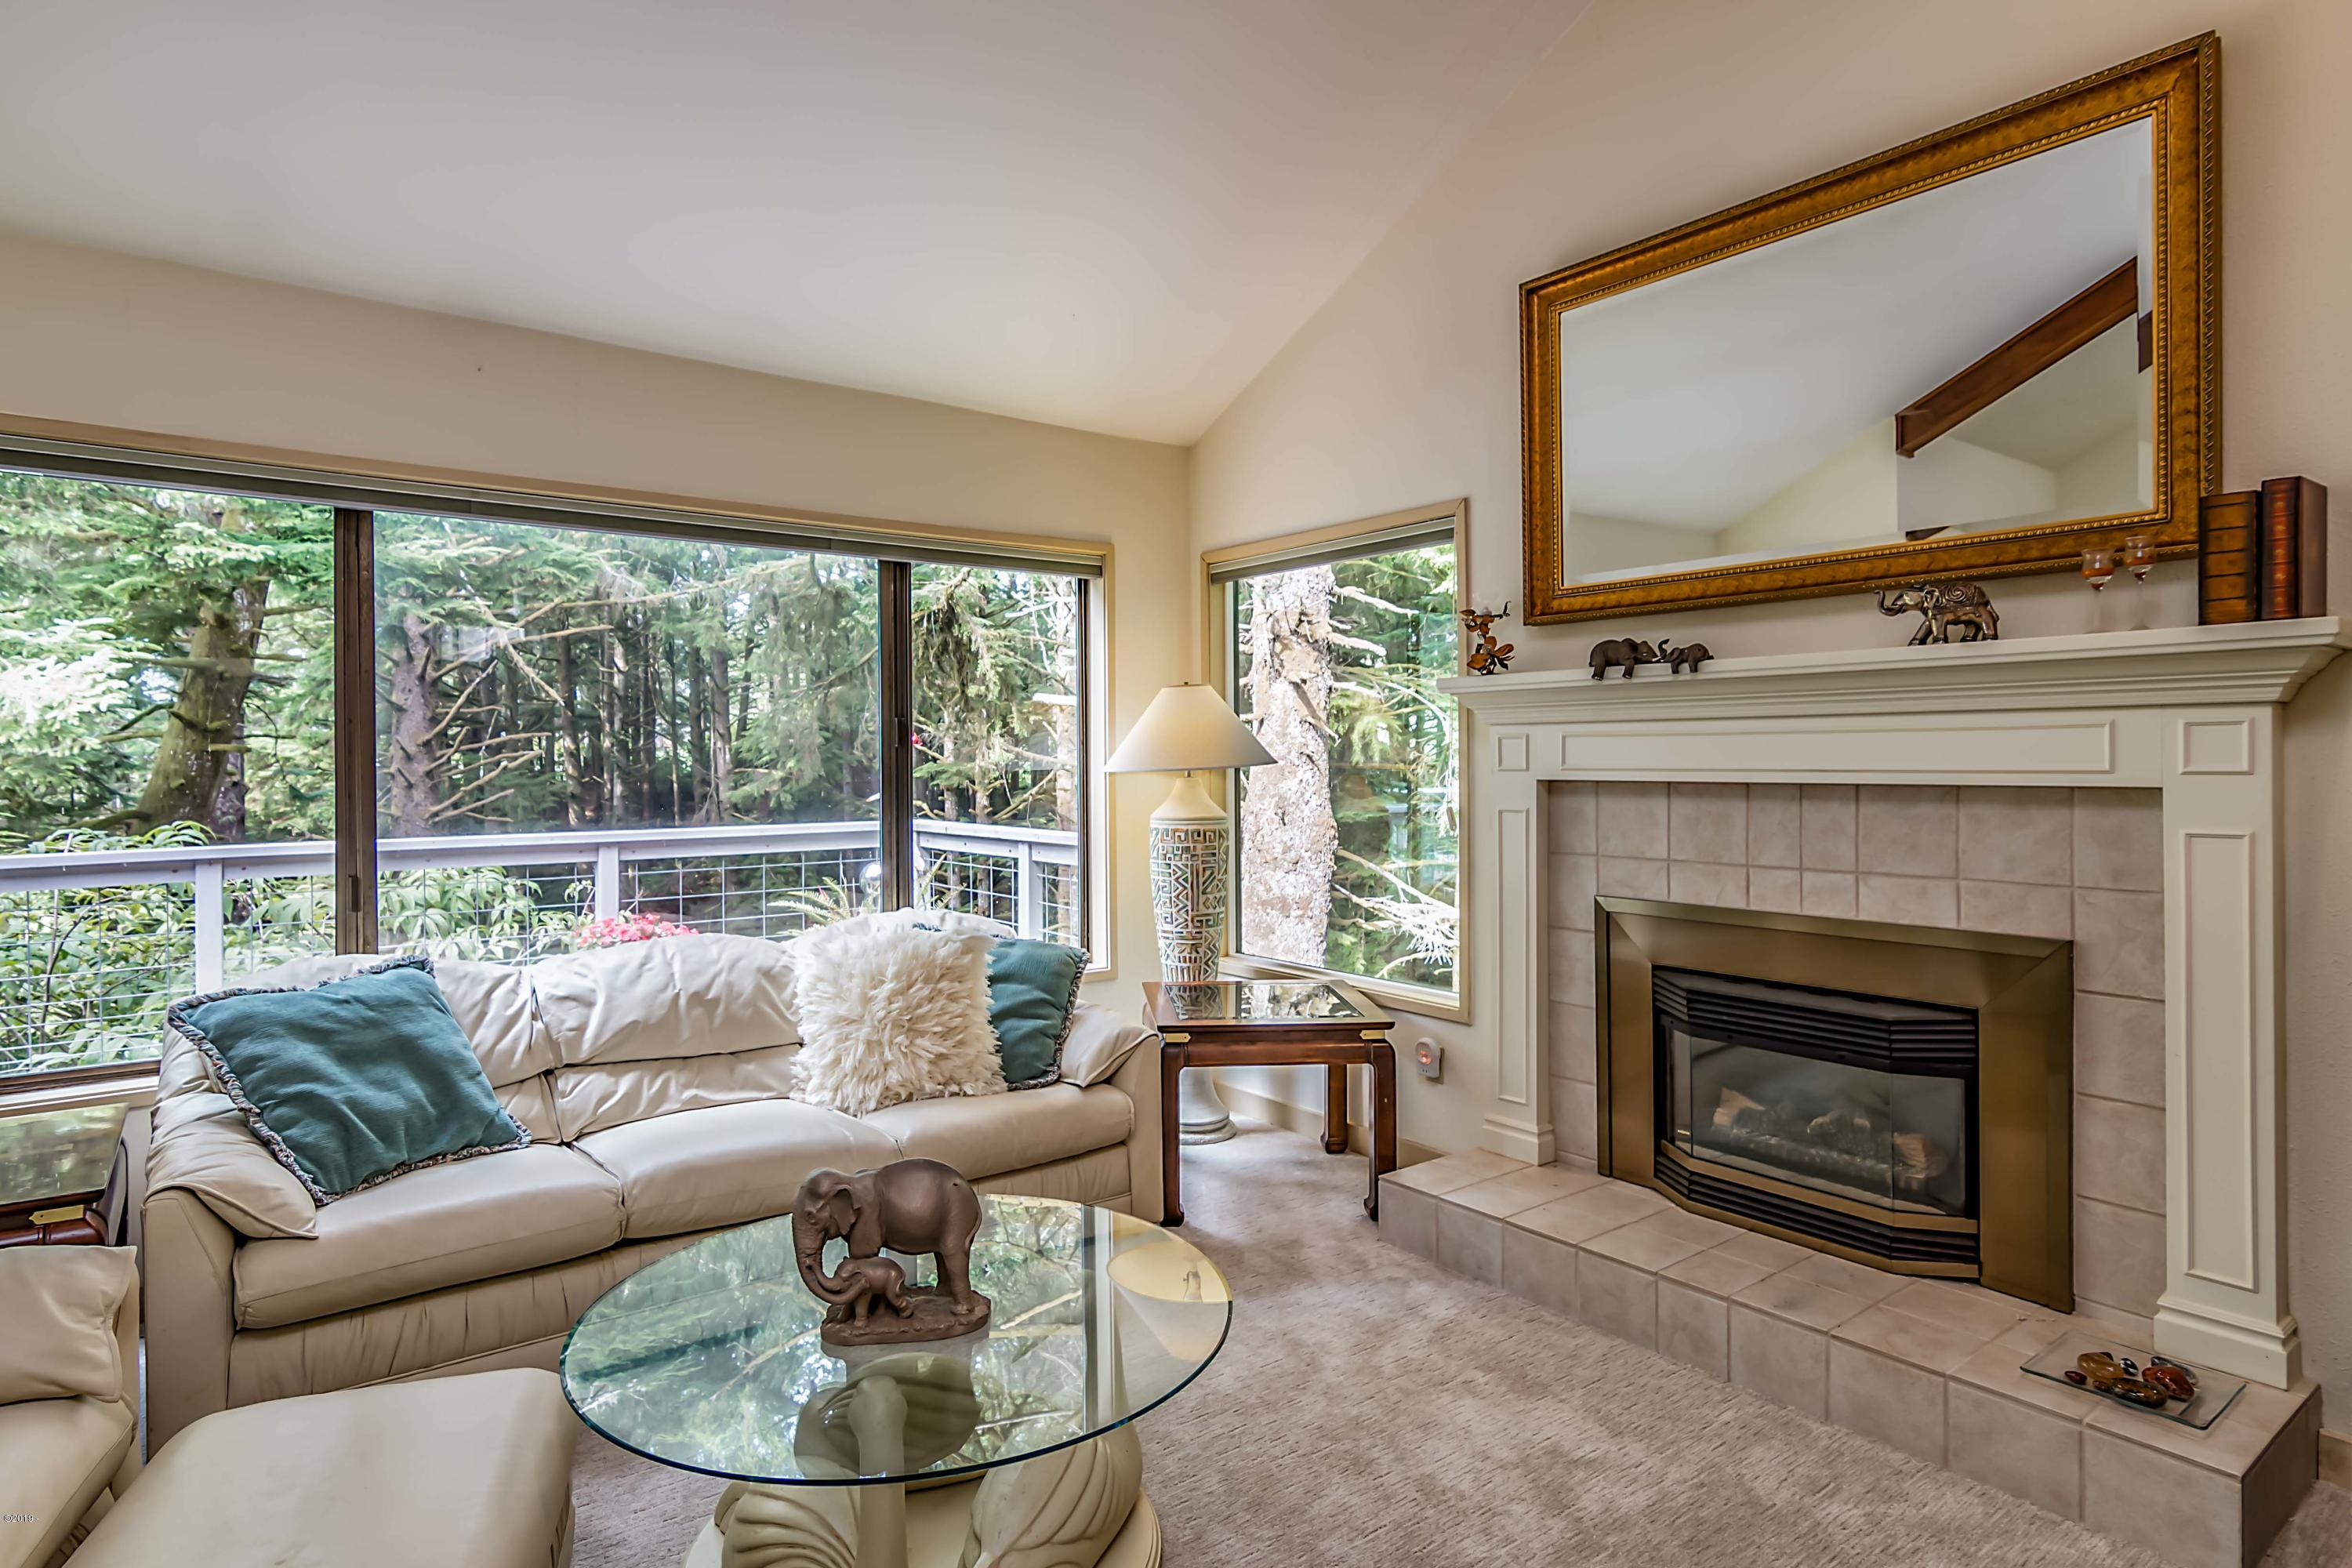 600 Island Dr, 3, Gleneden Beach, OR 97388